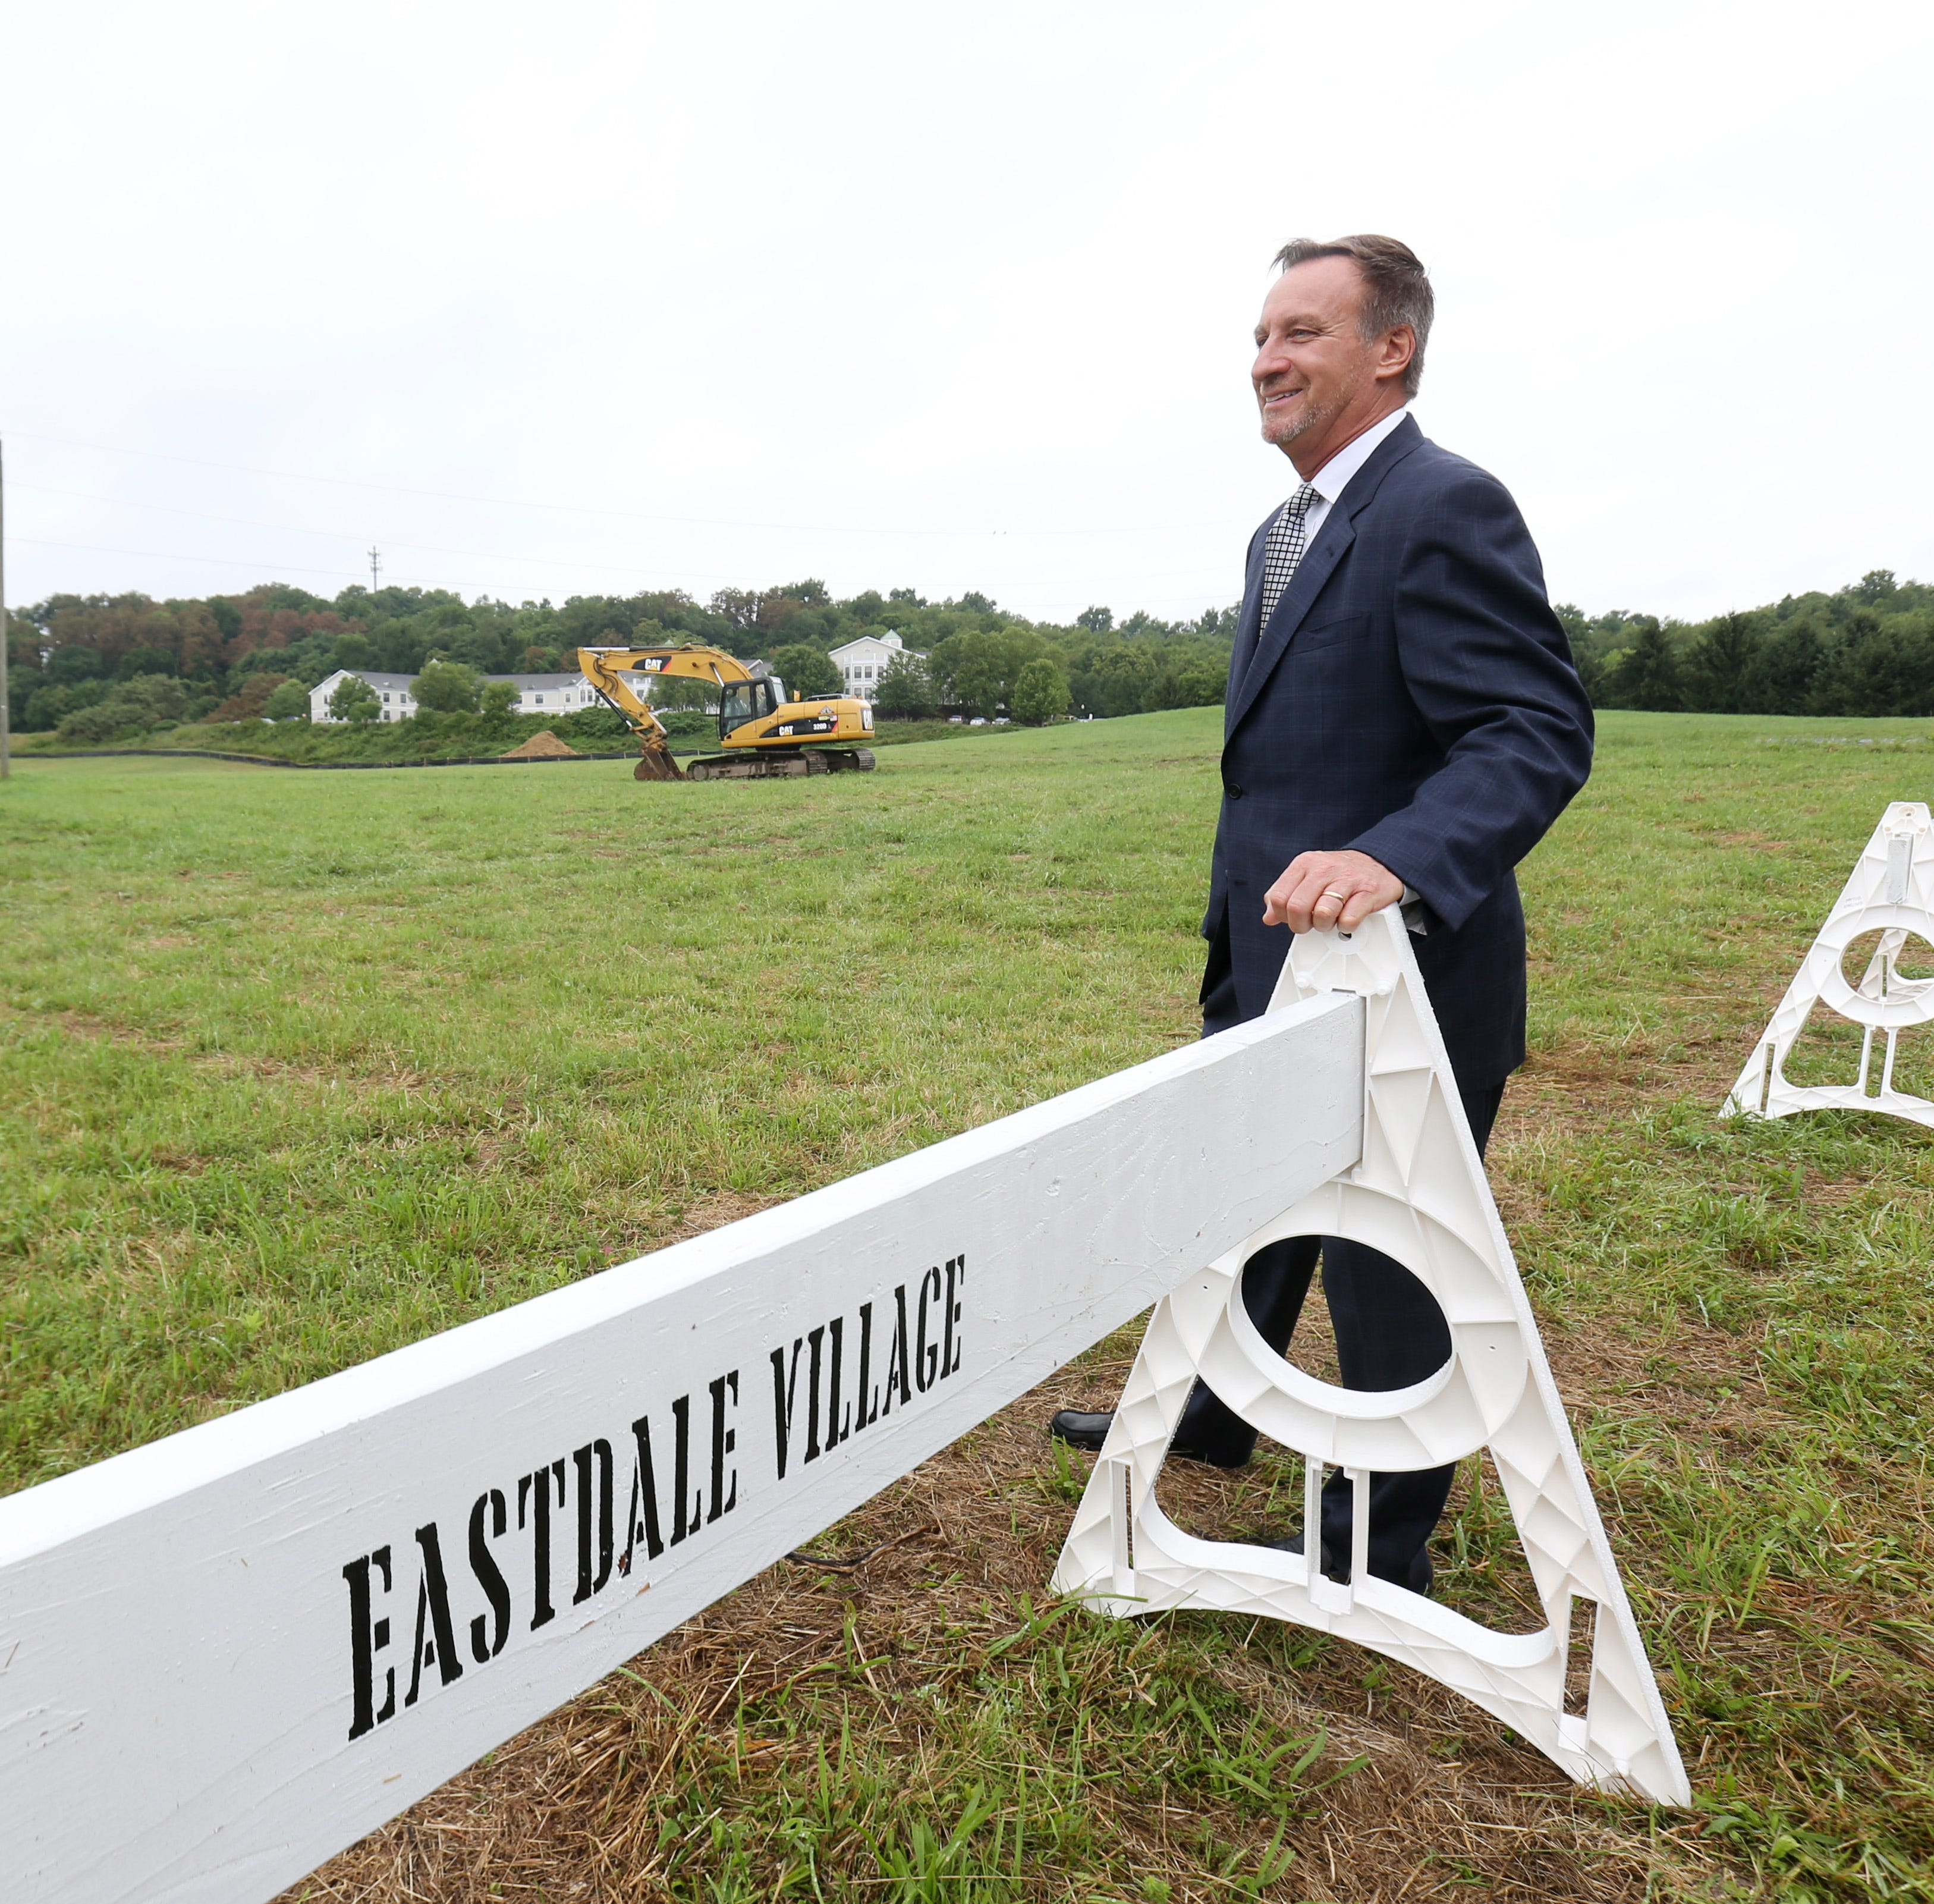 Eastdale Village targets young professionals, families with Poughkeepsie town center